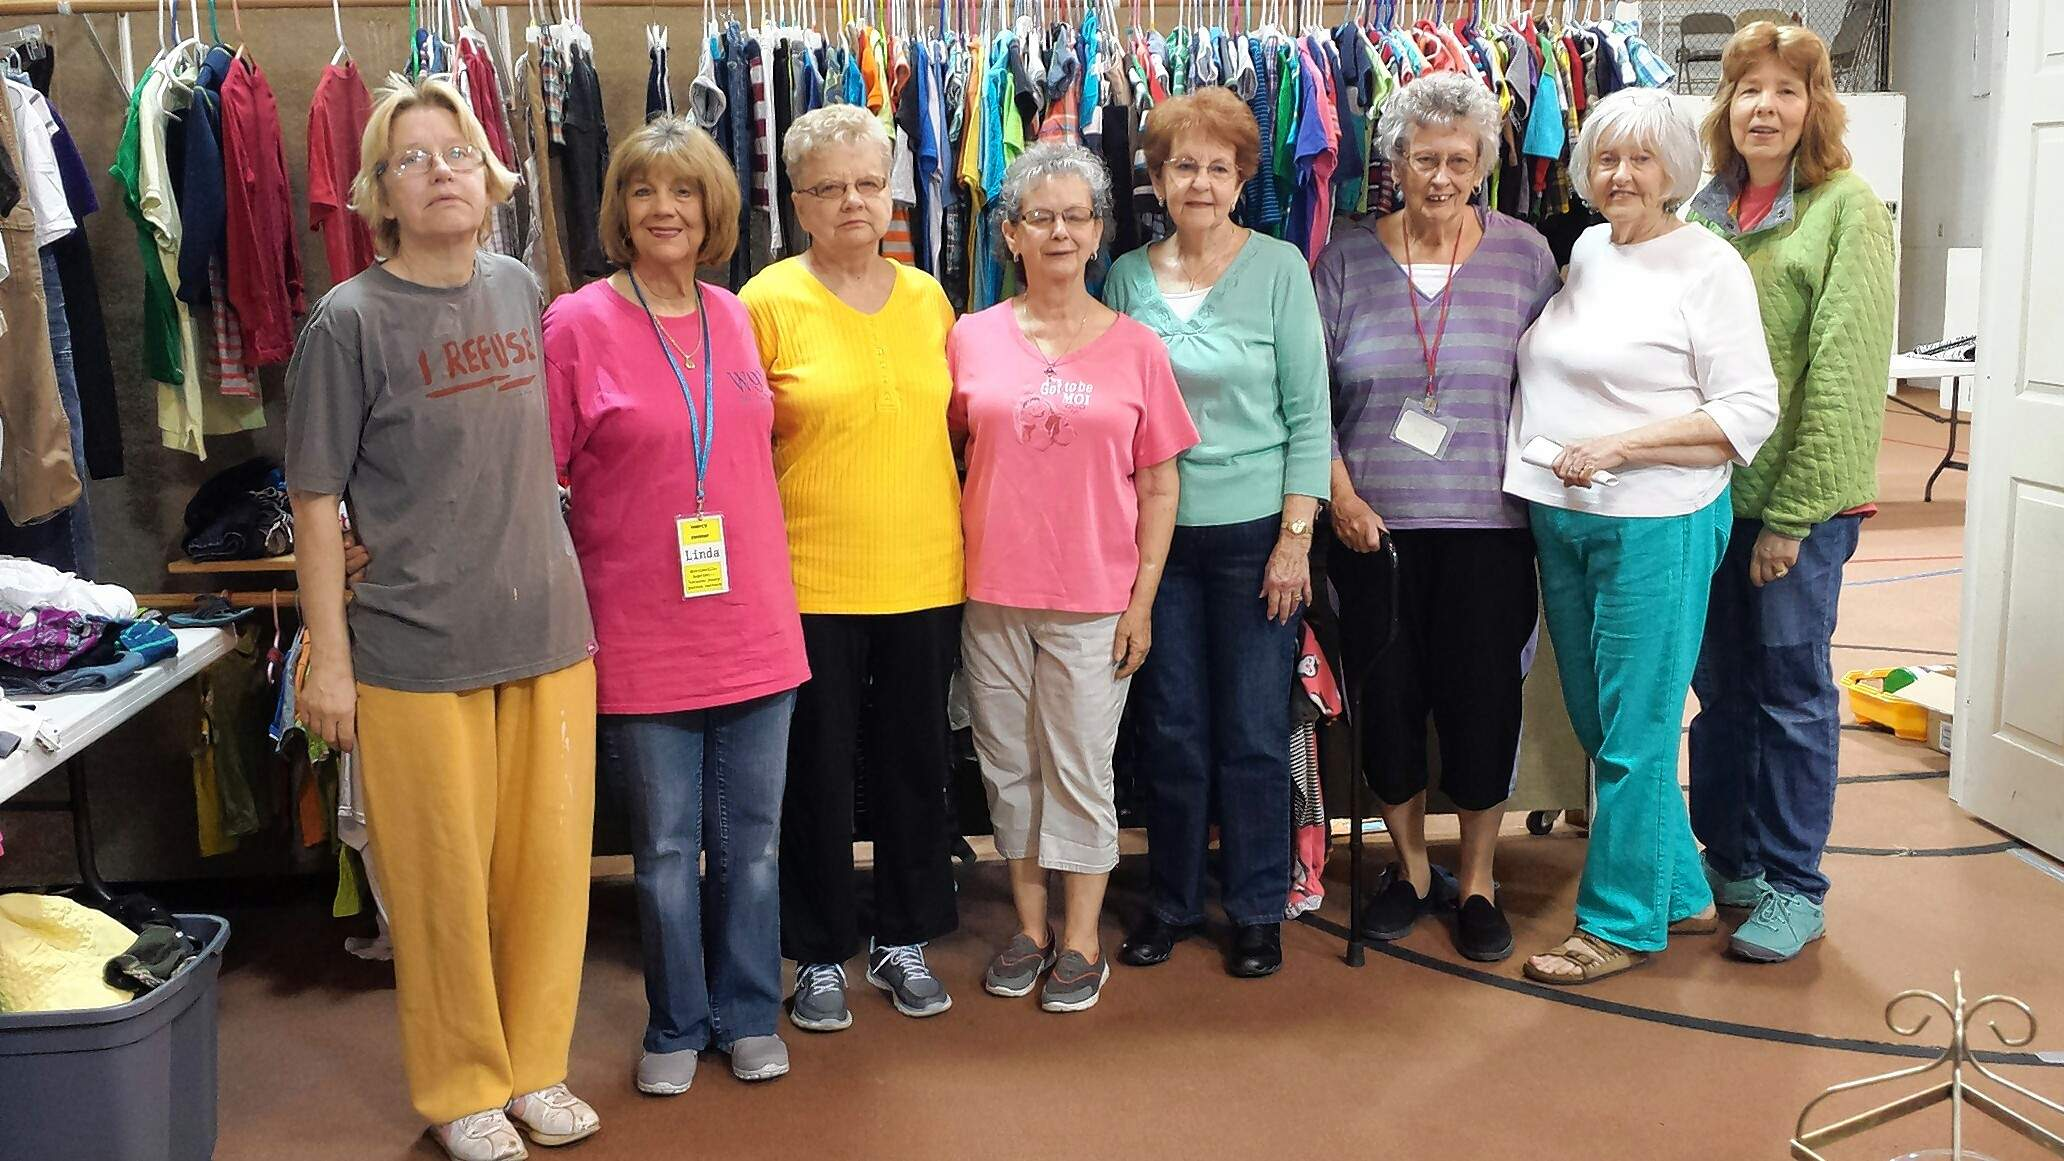 Volunteers of Mercy Center at Dorrisville Baptist Church include, from left, Sheila Mann, Linda Teegarden, Deloris Sharpin, Andrea Rector, Carolyn Dunn, Mary Smith, Judy Cowgur and Dena Elam. Darlene Colson was unavailable for the photo.